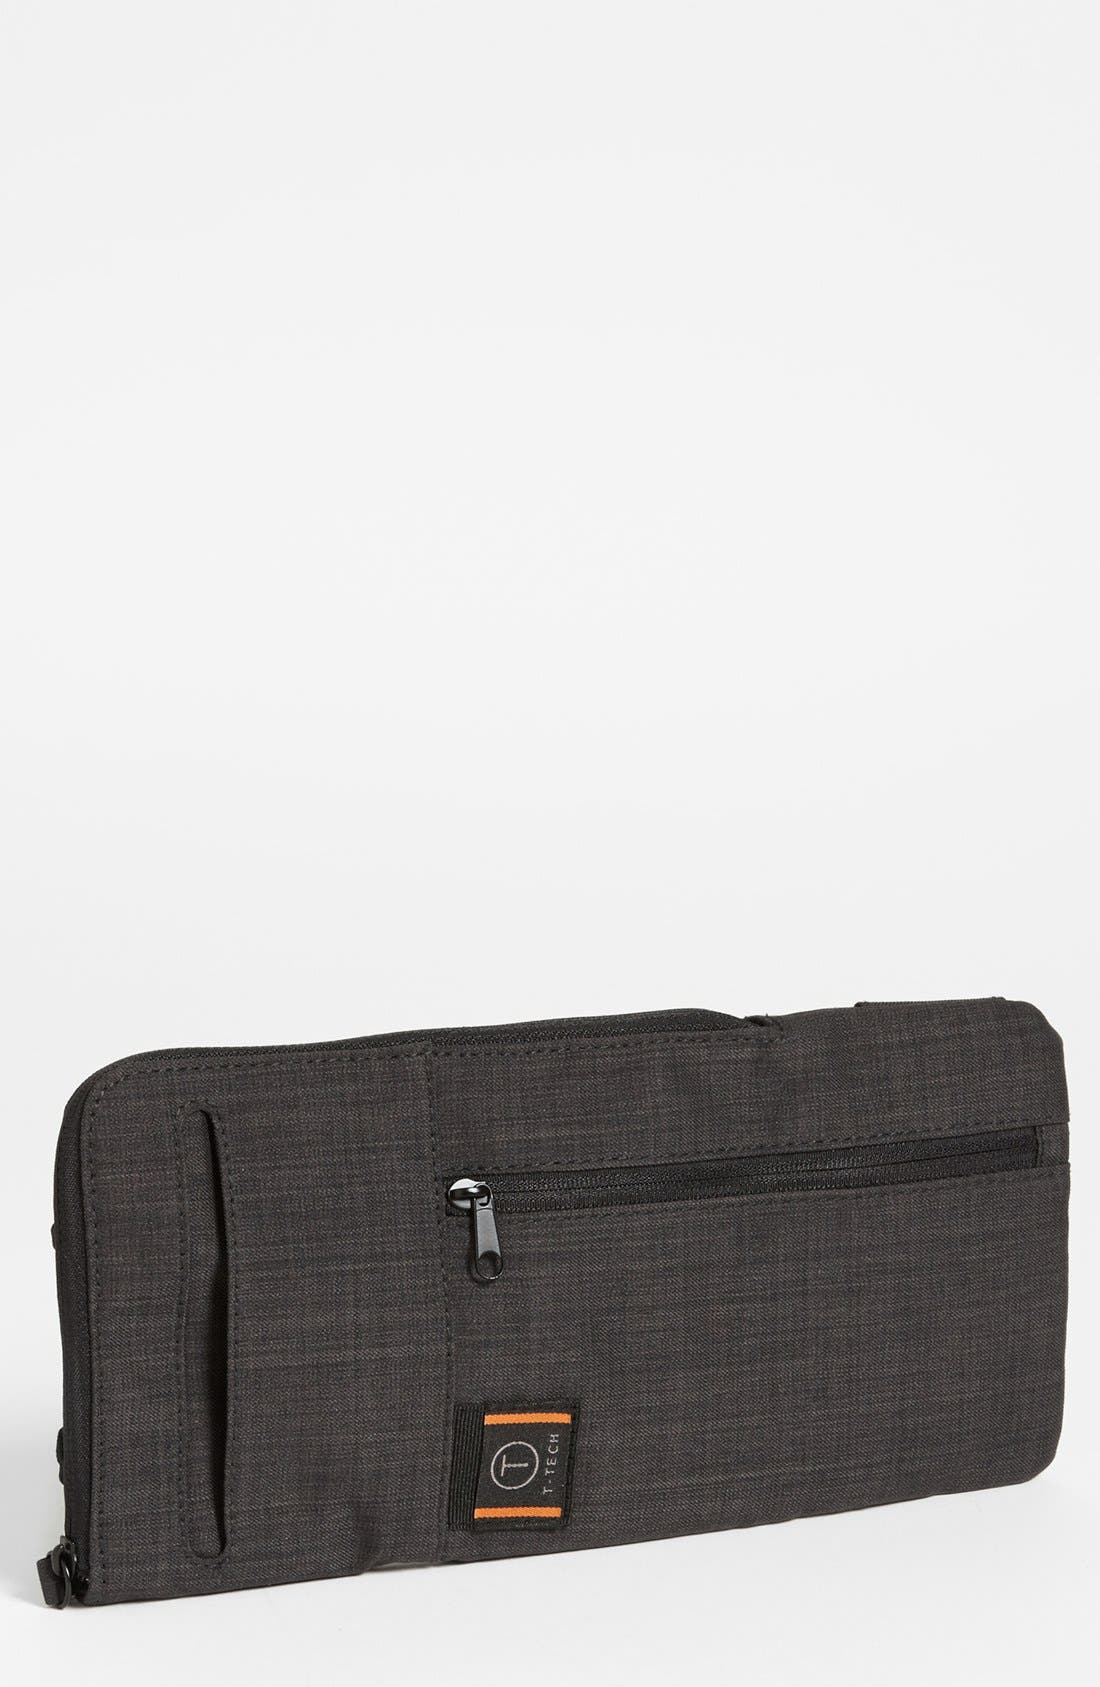 Main Image - T-Tech by TUMI Convertible Undercover Stash Bag